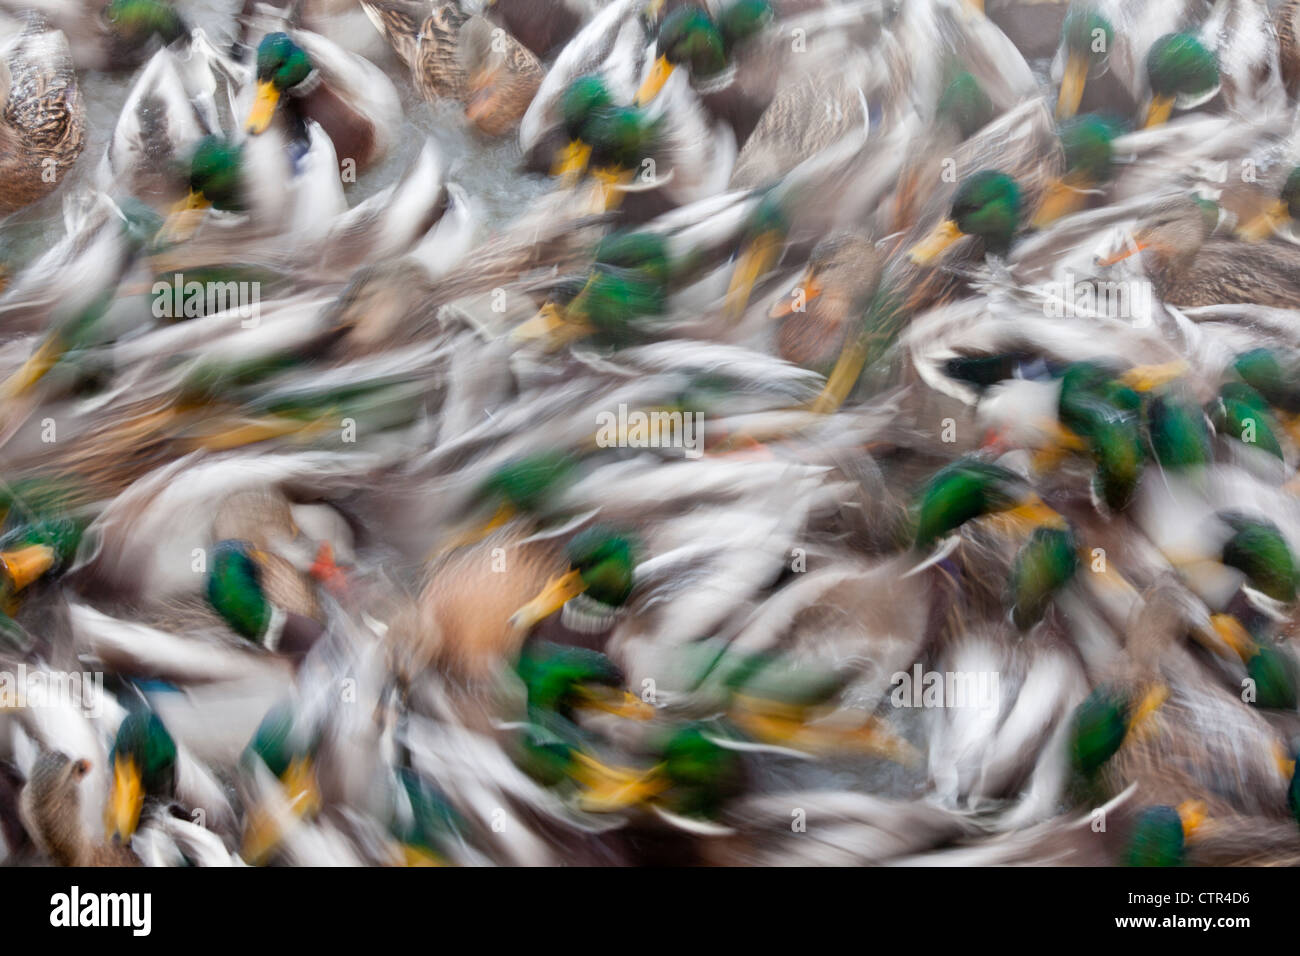 Résumé d'un grand troupeau de canards colverts nager dans un étang à Anchorage, Alaska, Photo Stock